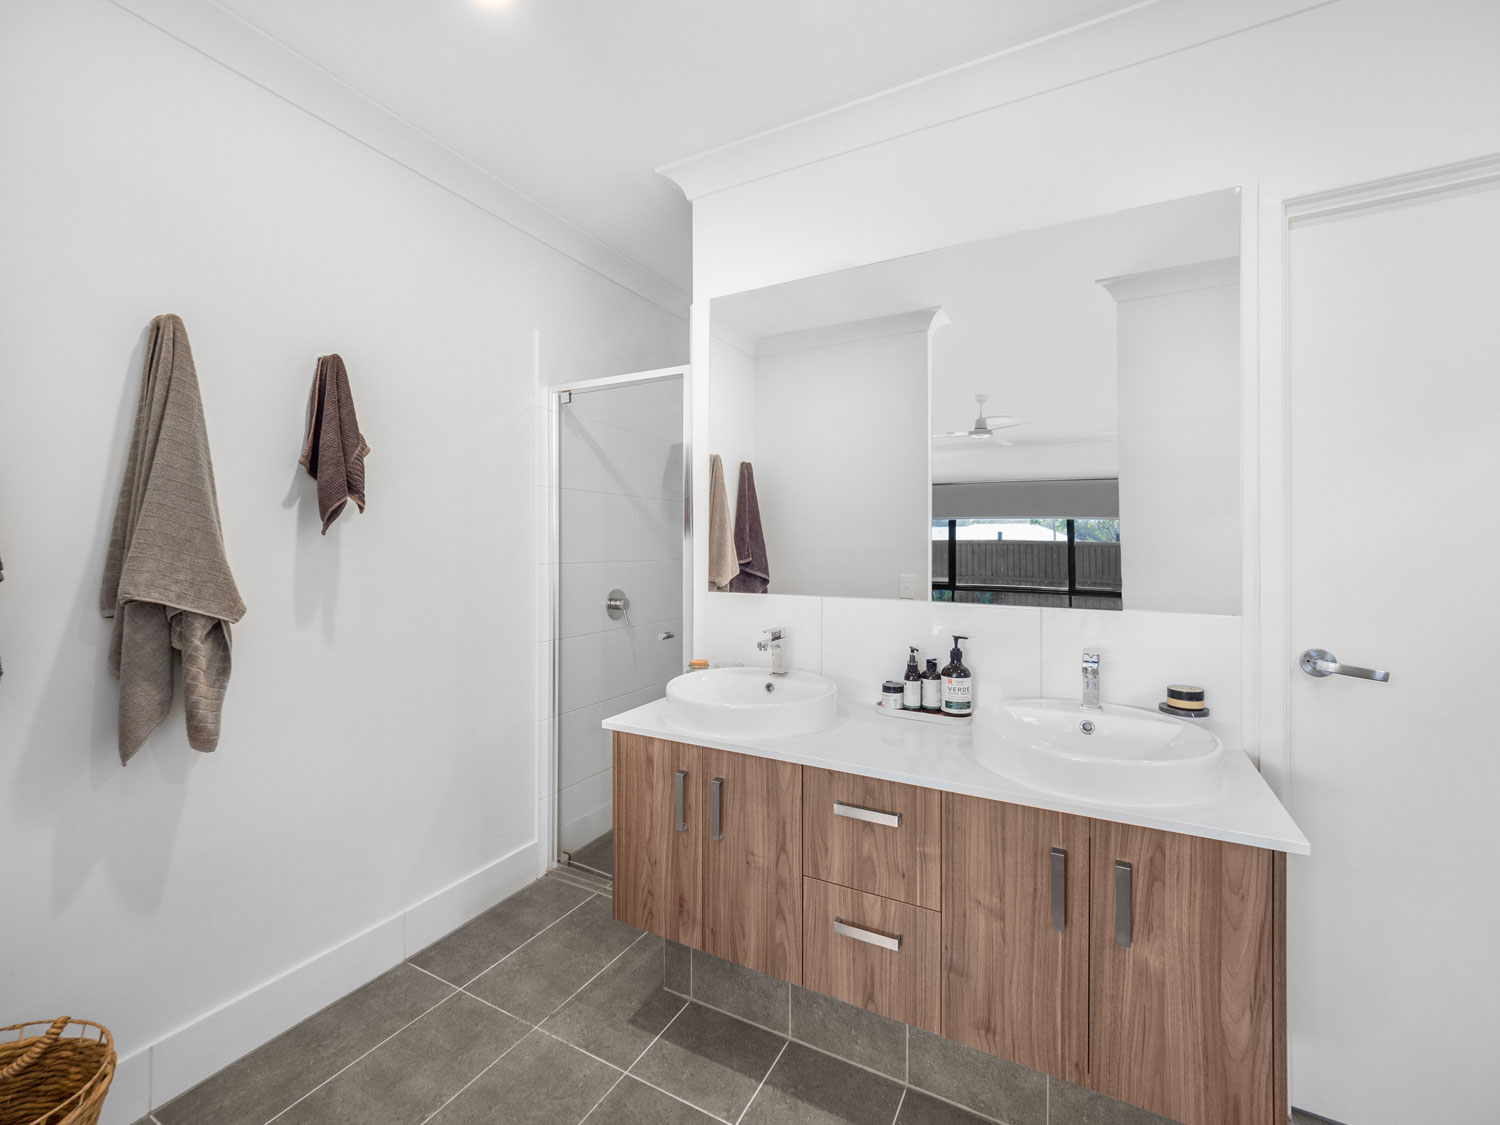 The ensuite - Real estate photography at Waterford